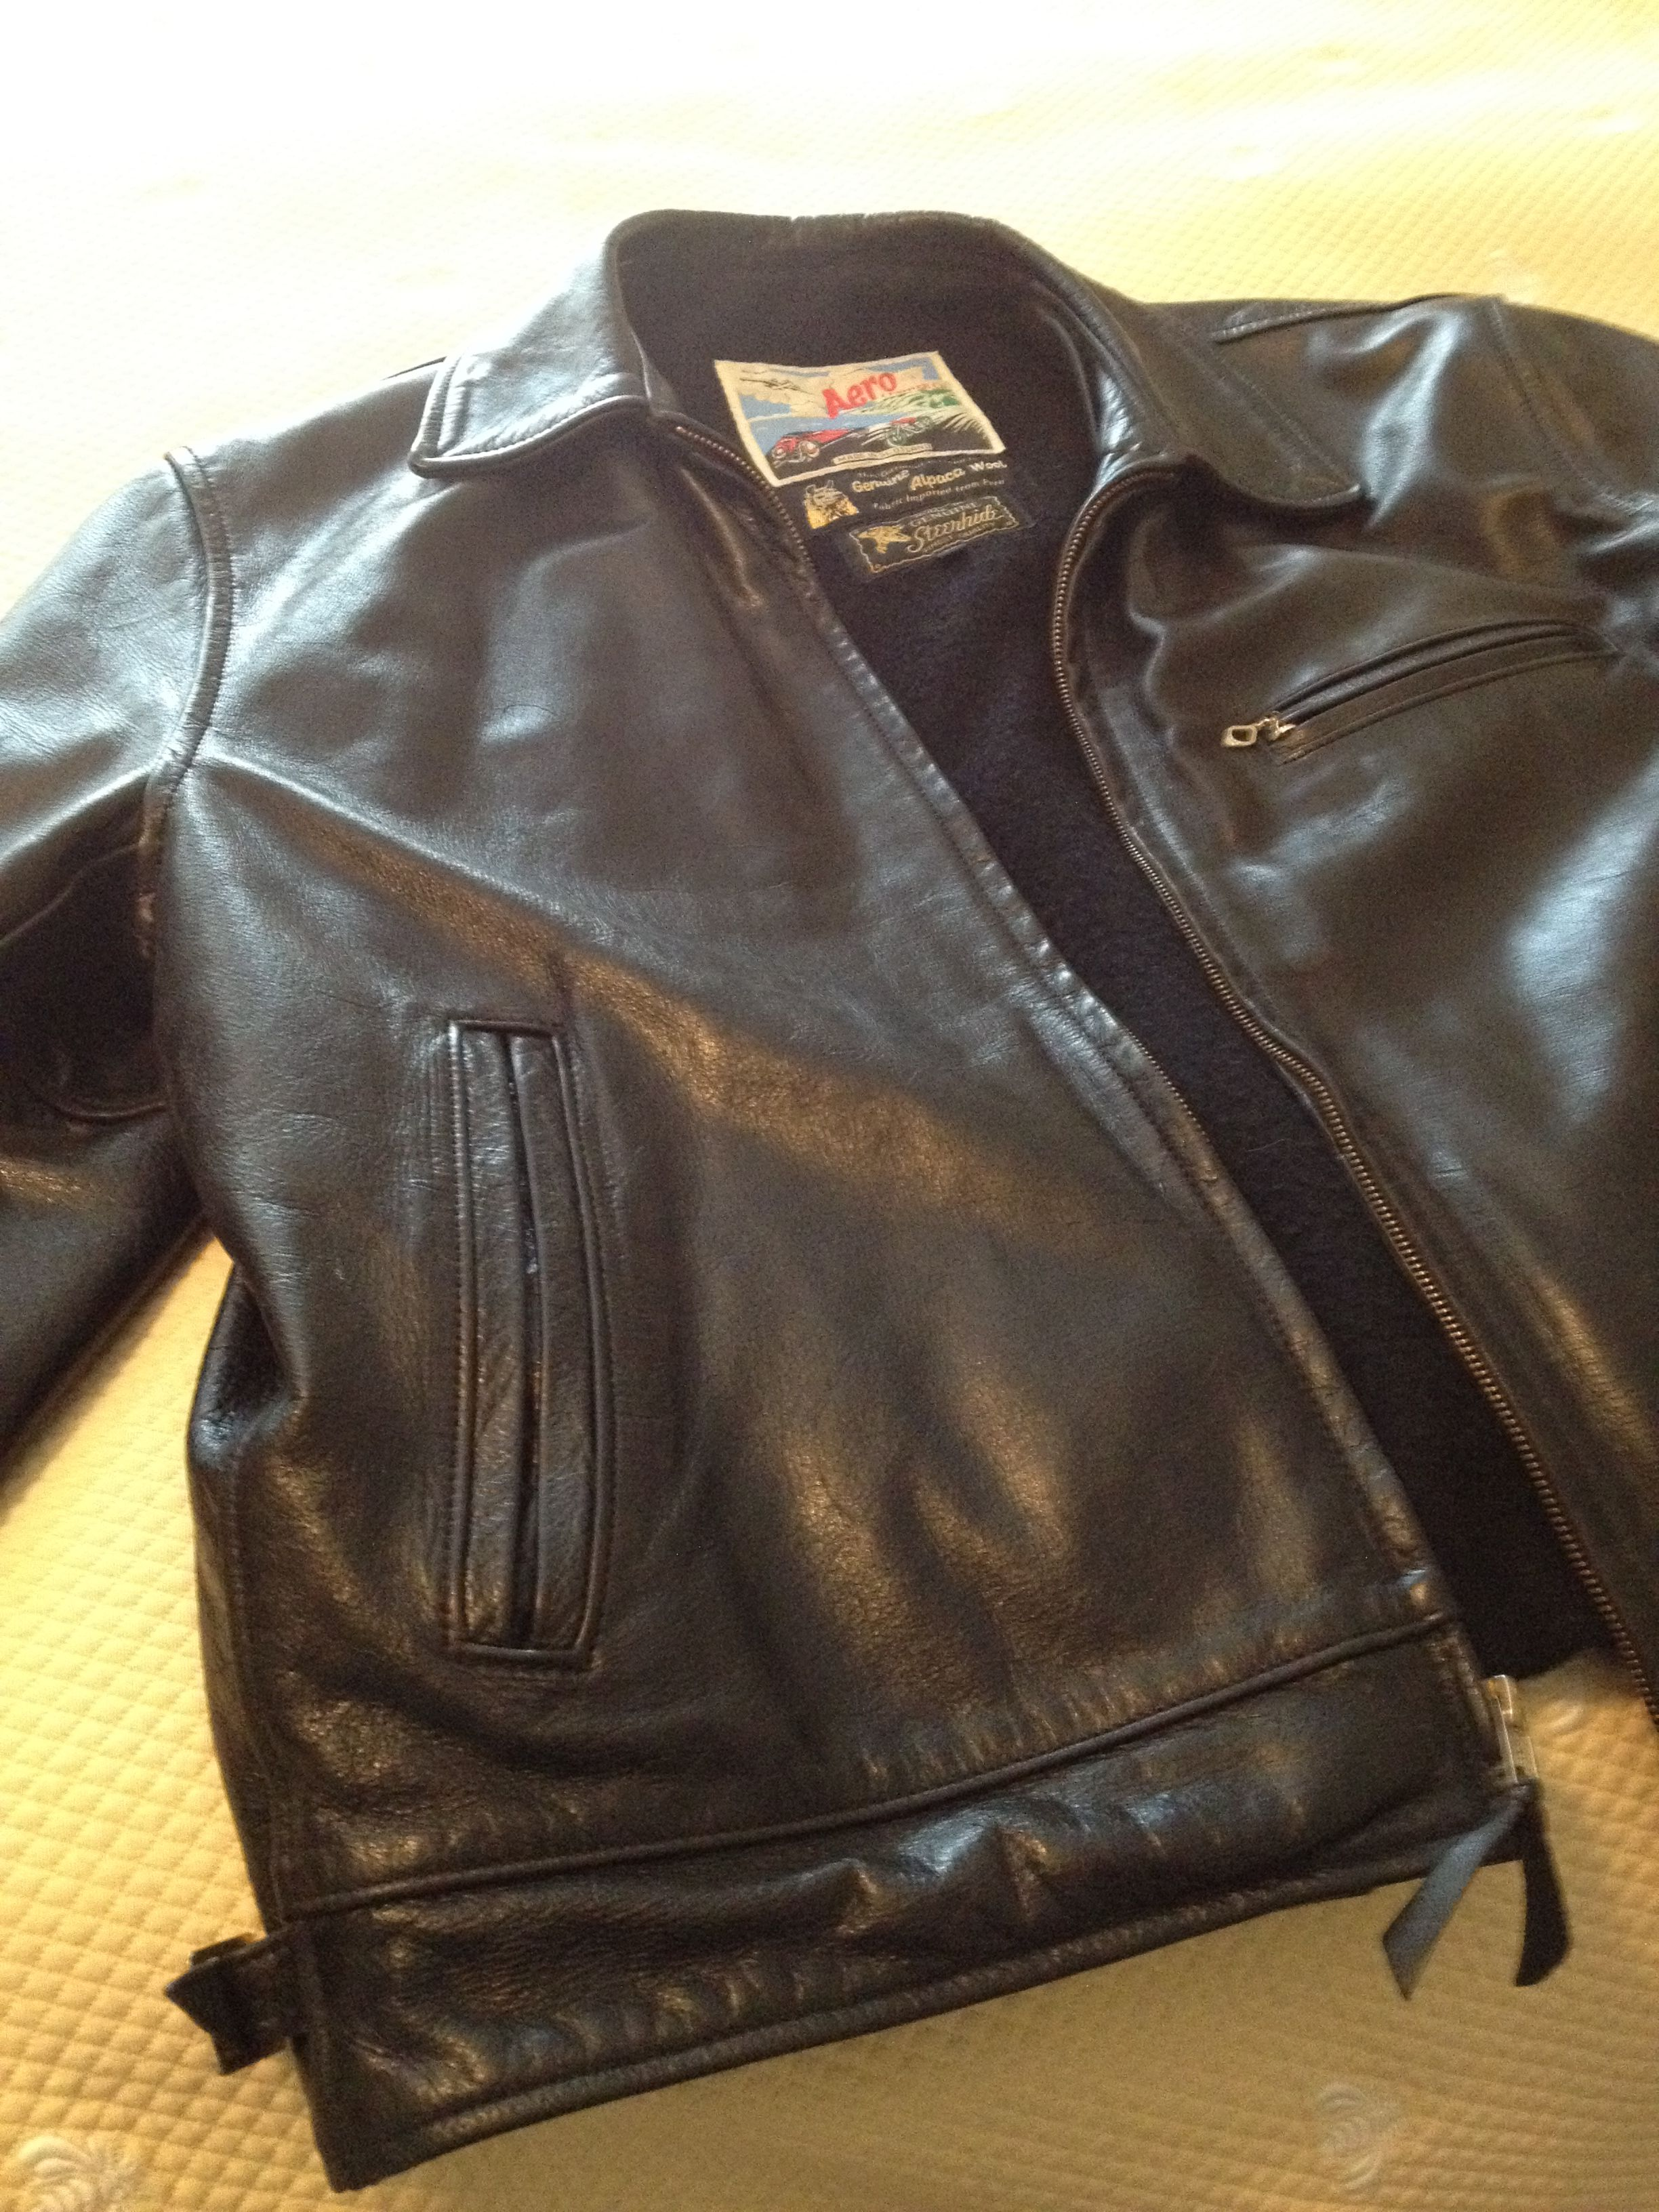 Aero Leather from Scotland. I have three of these